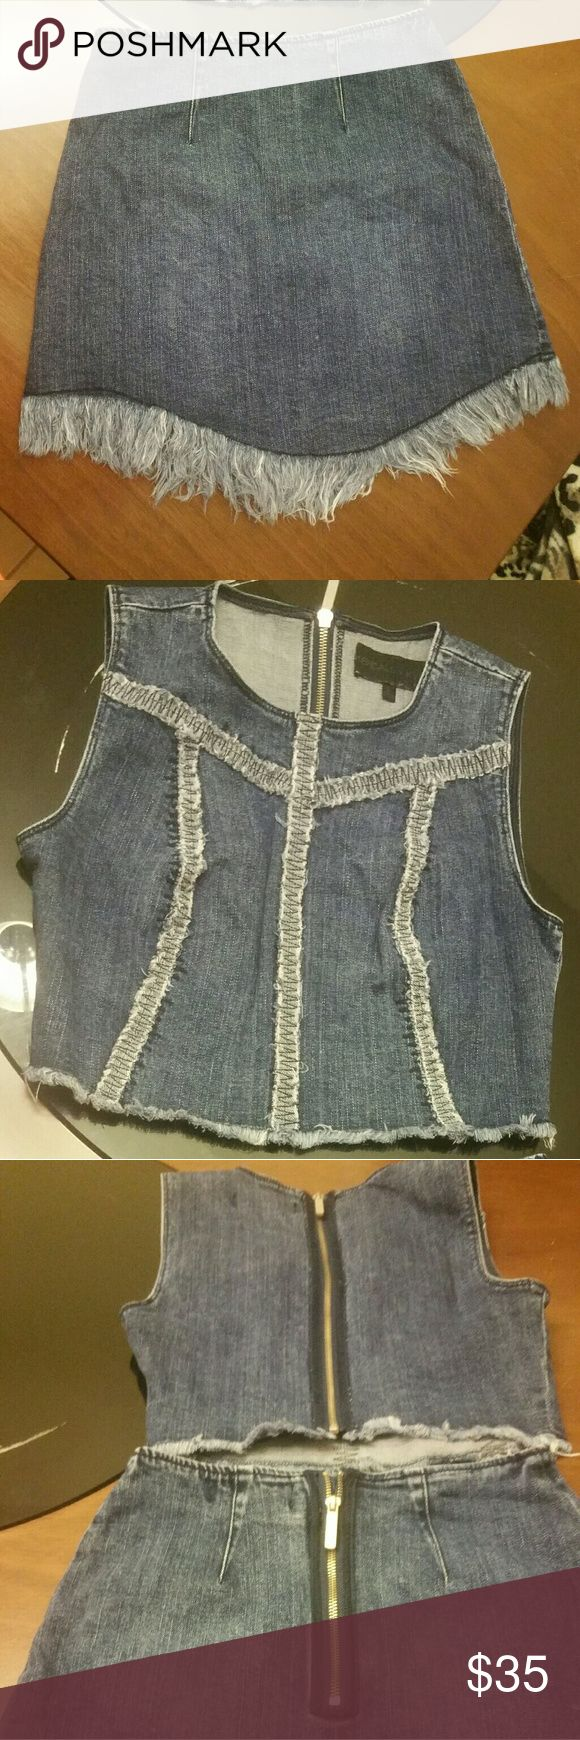 Kendall +Kylie outfit blue jean skirt &top Kendall + Kylie blue jean skirt set size small fits really cute frayed at the bottom of the shirt & the bottom of the skirt zips up the back of the skirt in the back of the top no holes and no stains like new from a smoke free home no pets Kendall & Kylie Other